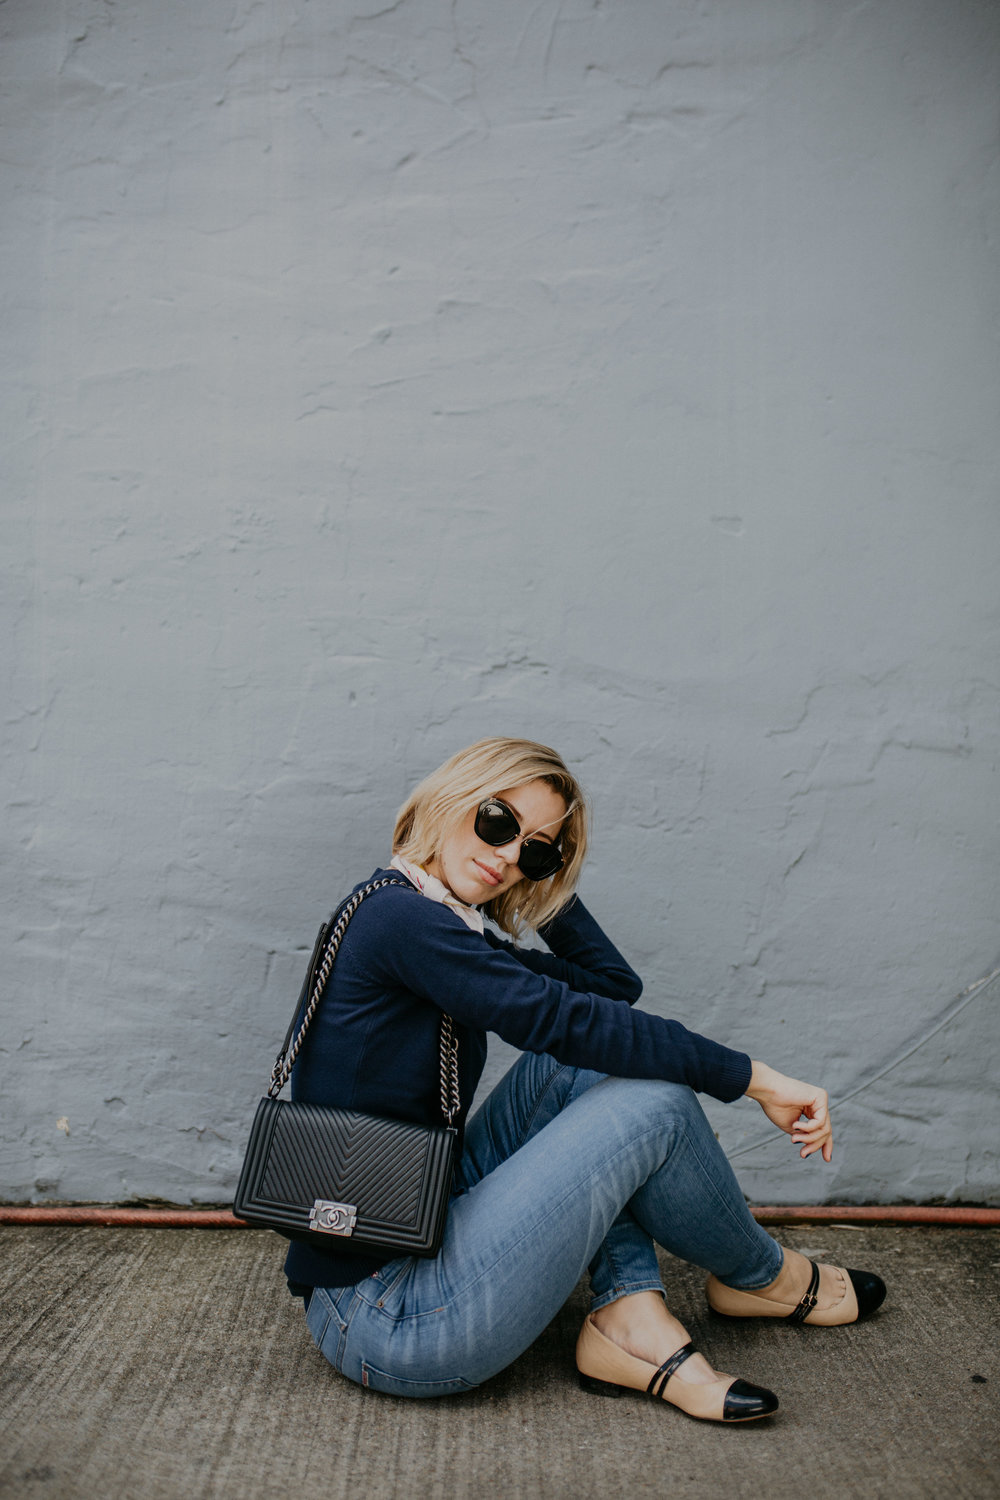 Photos by Erin Krespan // Wearing Hudson Jeans via Fitcode c/o, Take 5 Boutique sweater, scarf (comes in a set of 4!) and nail polish in Odeon via Odeme c/o, Chanel bag via Bag, Borrow or Steal, Ukies flats, Fossil Q smartwatch c/o, Sophie Blake bracelet, Miu Miu sunnies